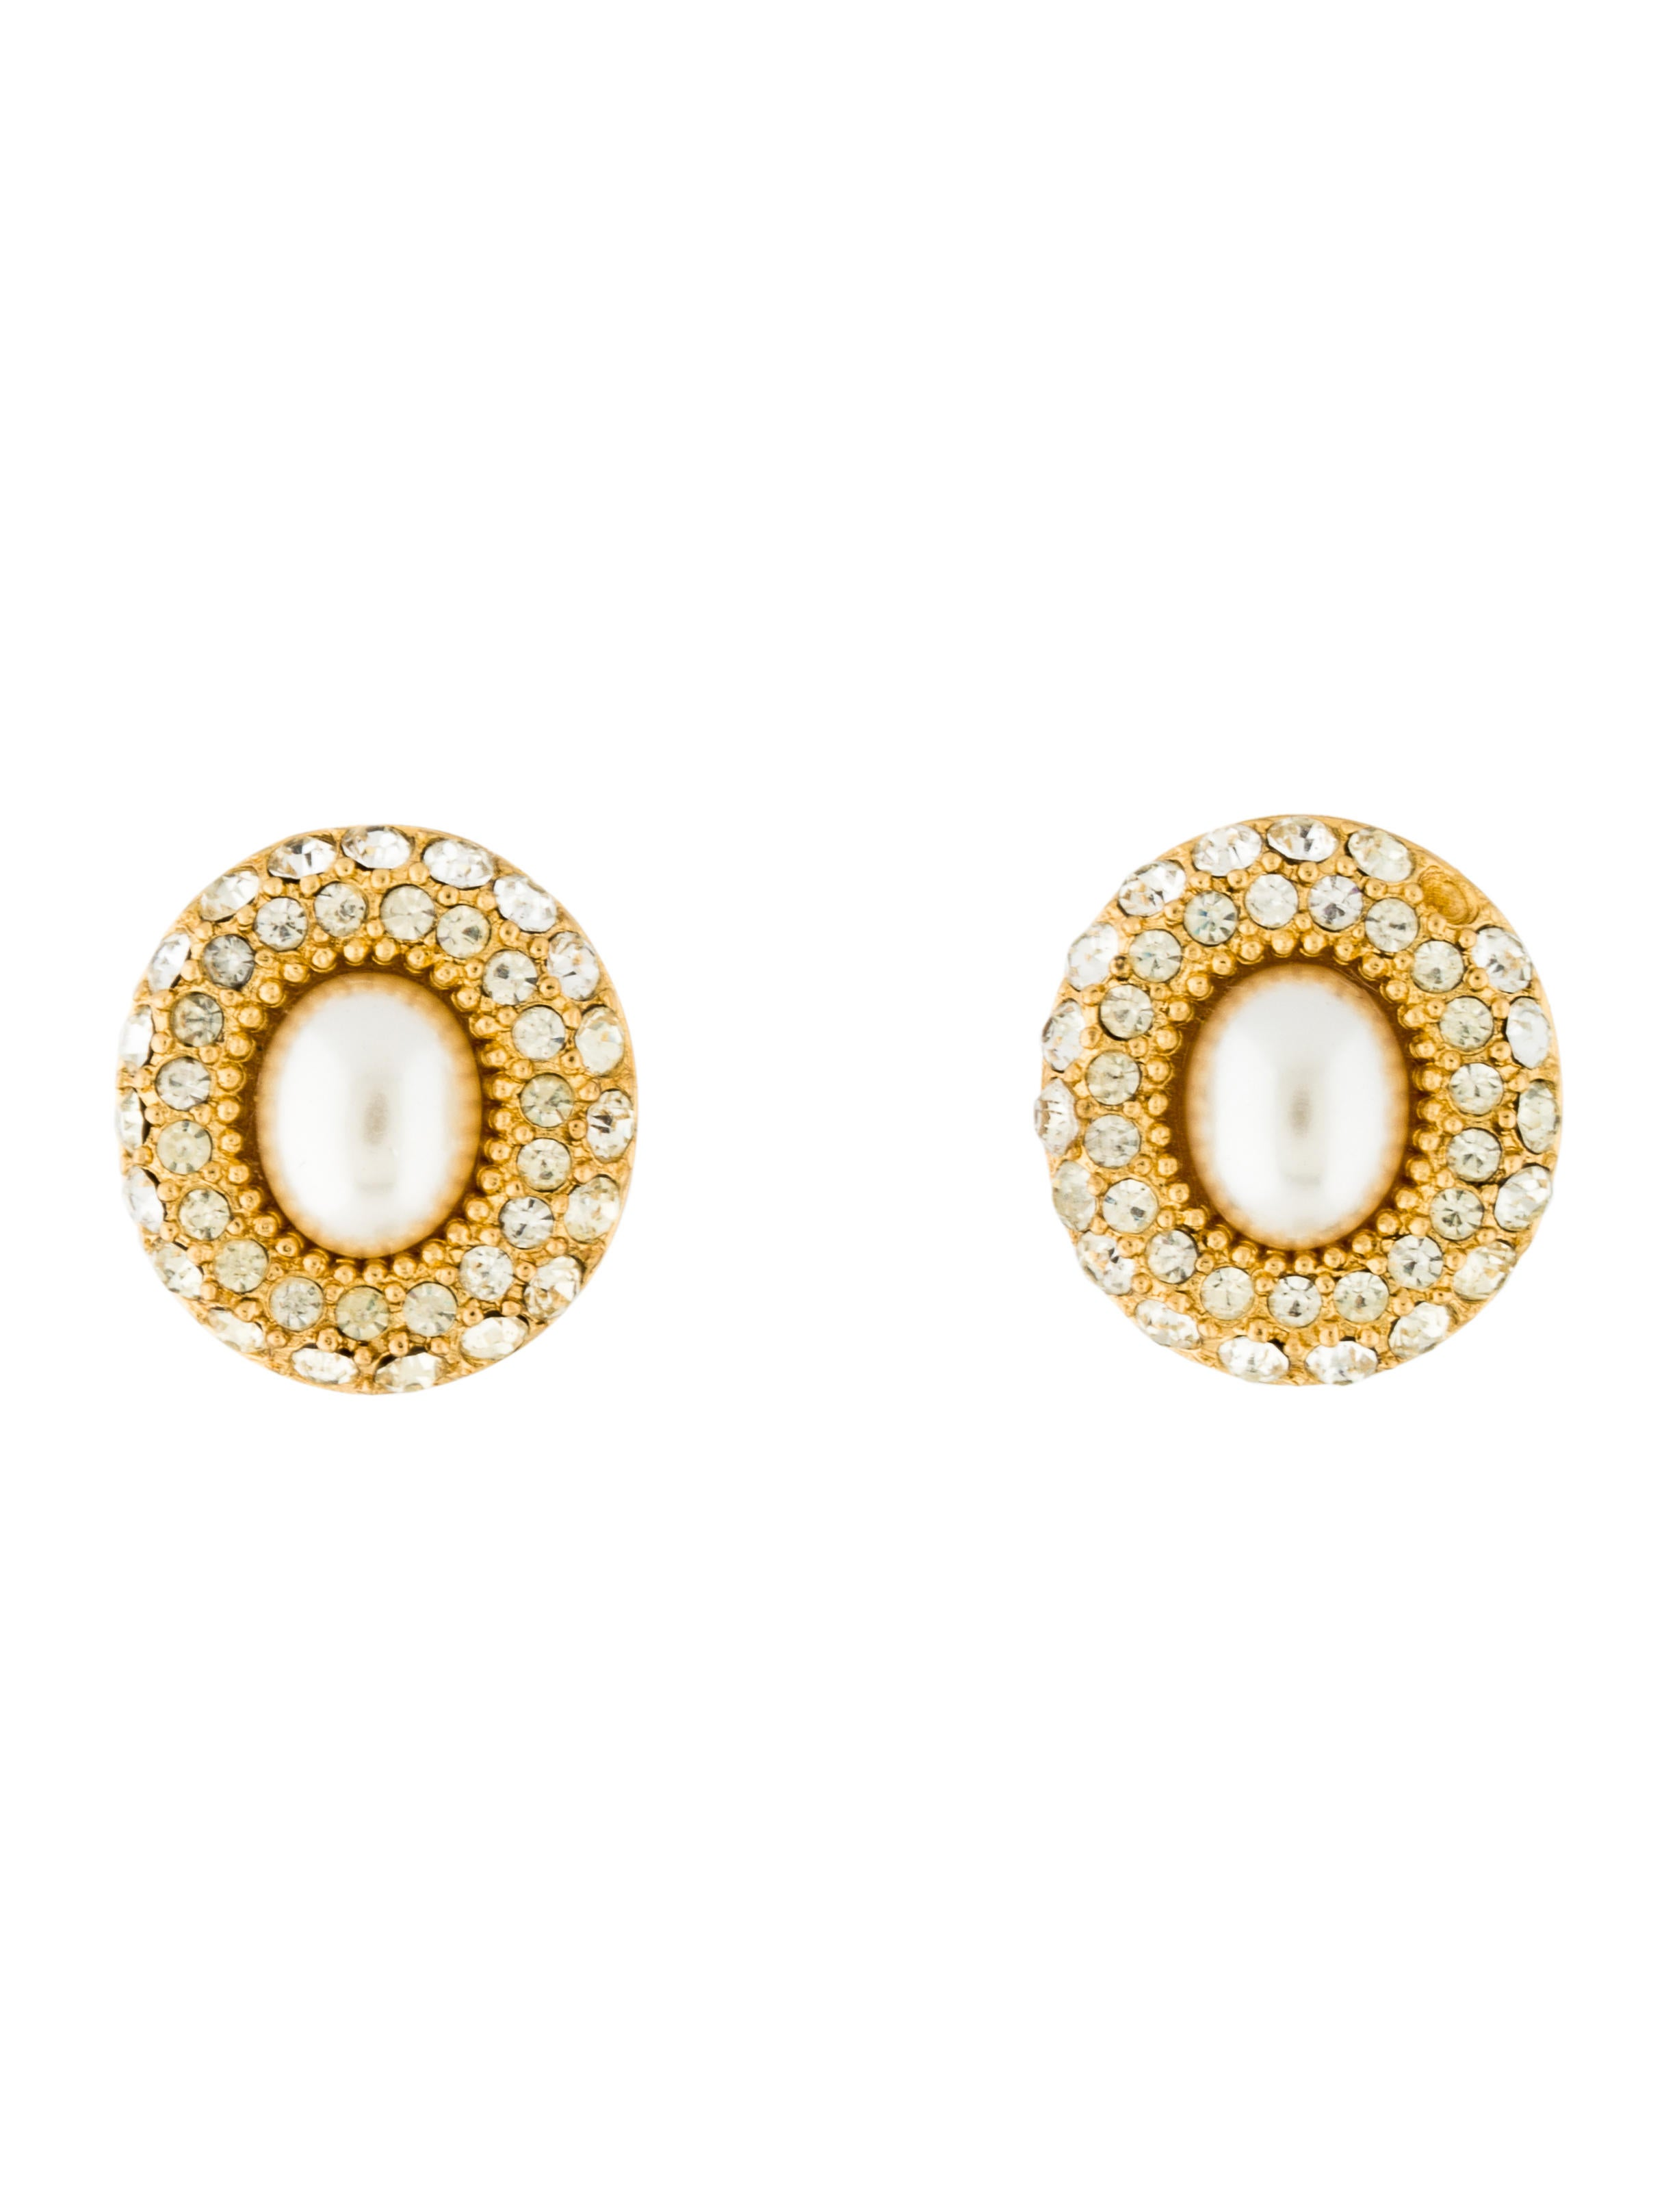 christian dior faux pearl crystal clip on earrings. Black Bedroom Furniture Sets. Home Design Ideas